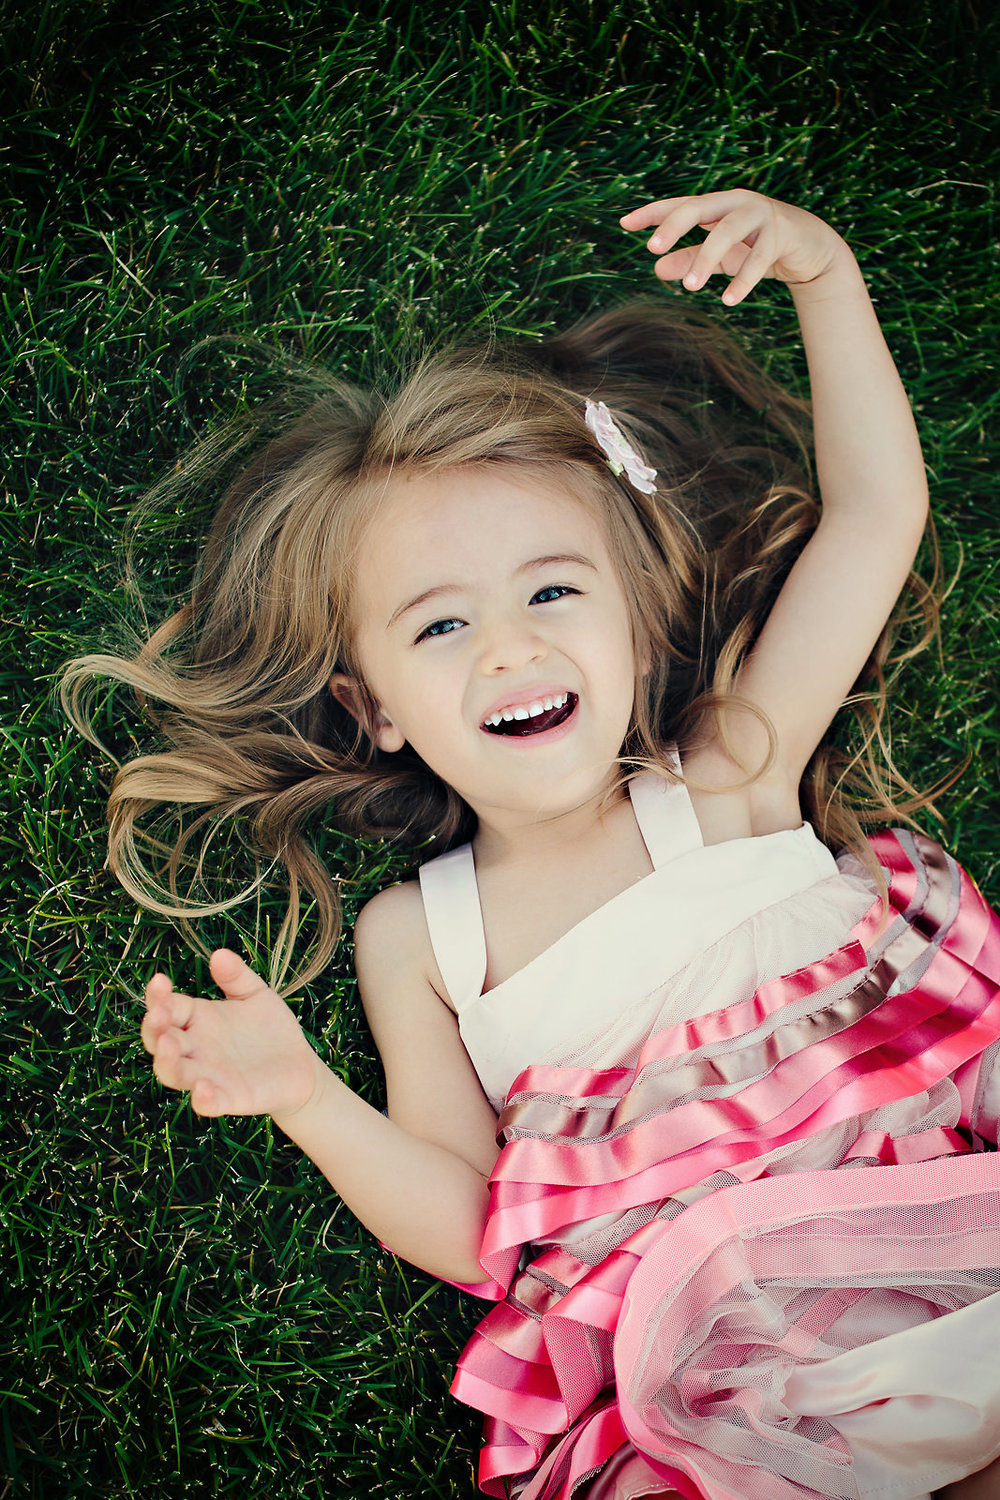 little-girl-pink-dress-laying-on-grass